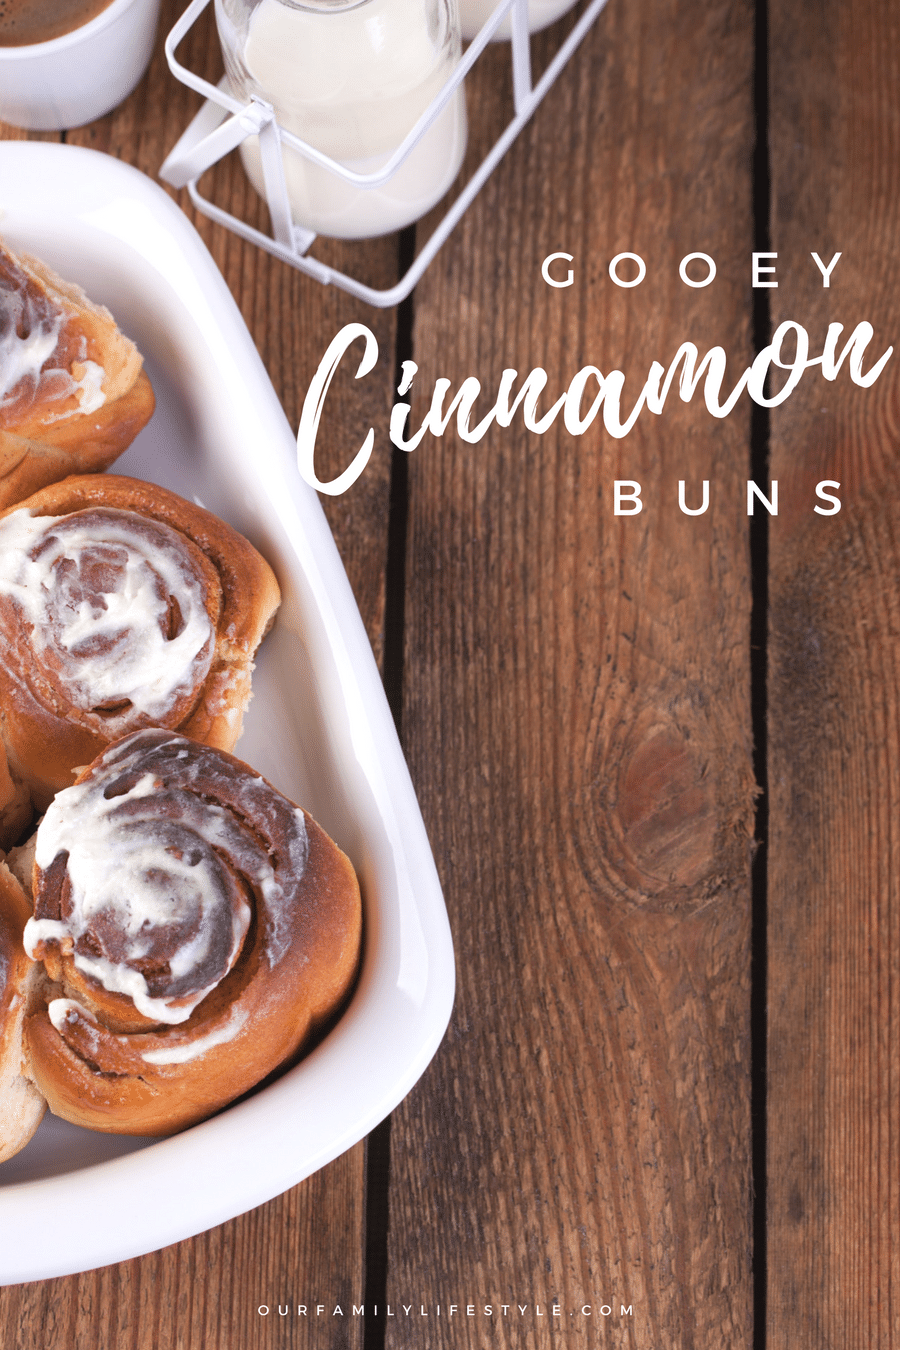 Gooey Cinnamon Buns recipe